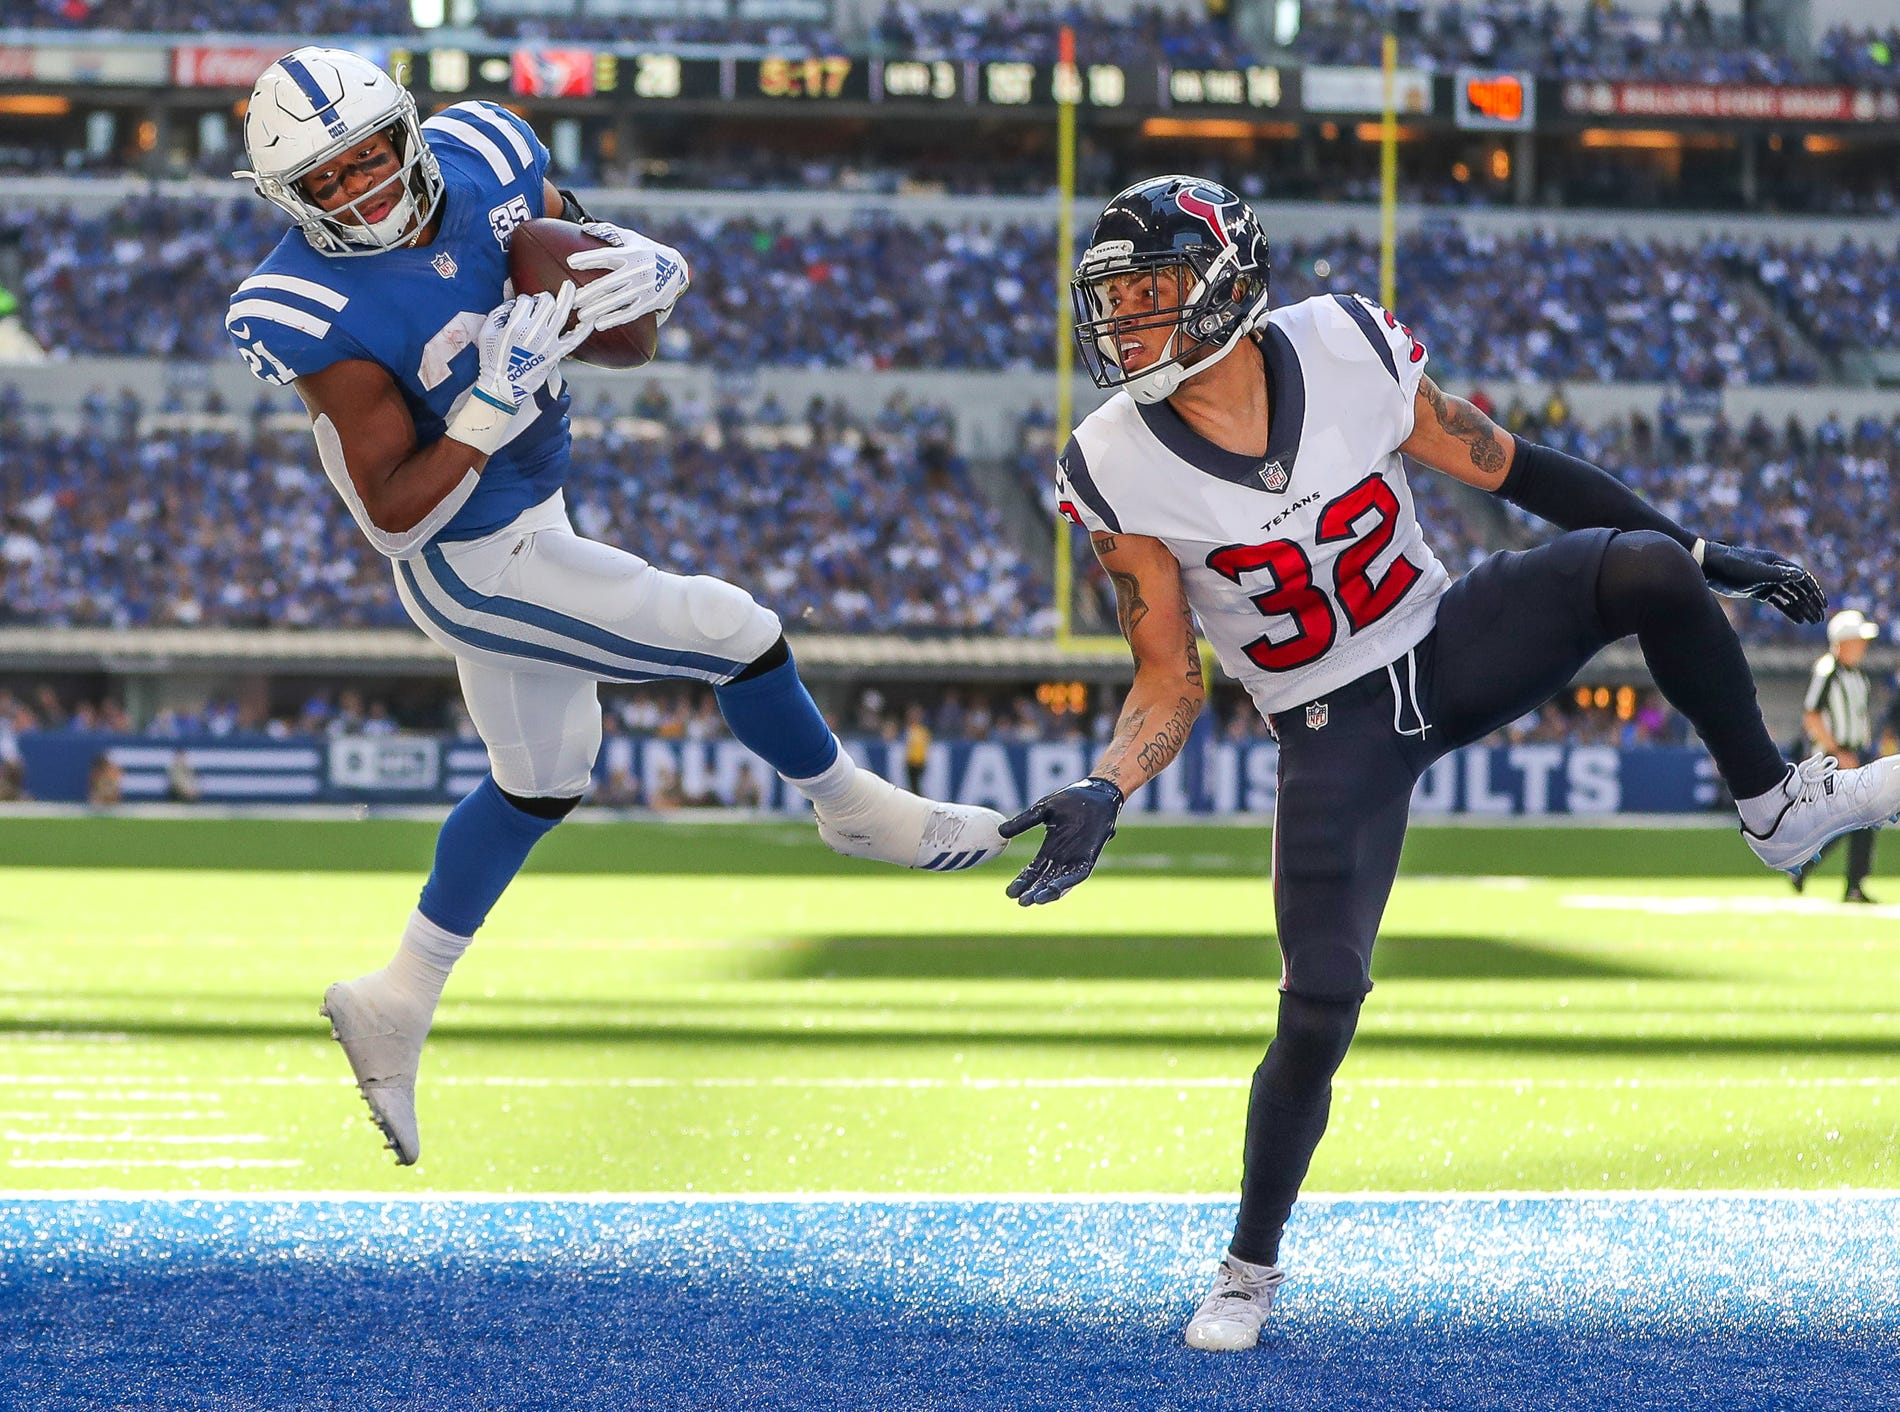 Indianapolis Colts running back Nyheim Hines (21) goes up and over Houston Texans defensive back Tyrann Mathieu (32) for the touchdown grab at Lucas Oil Stadium on Sunday, Sept. 30, 2018.